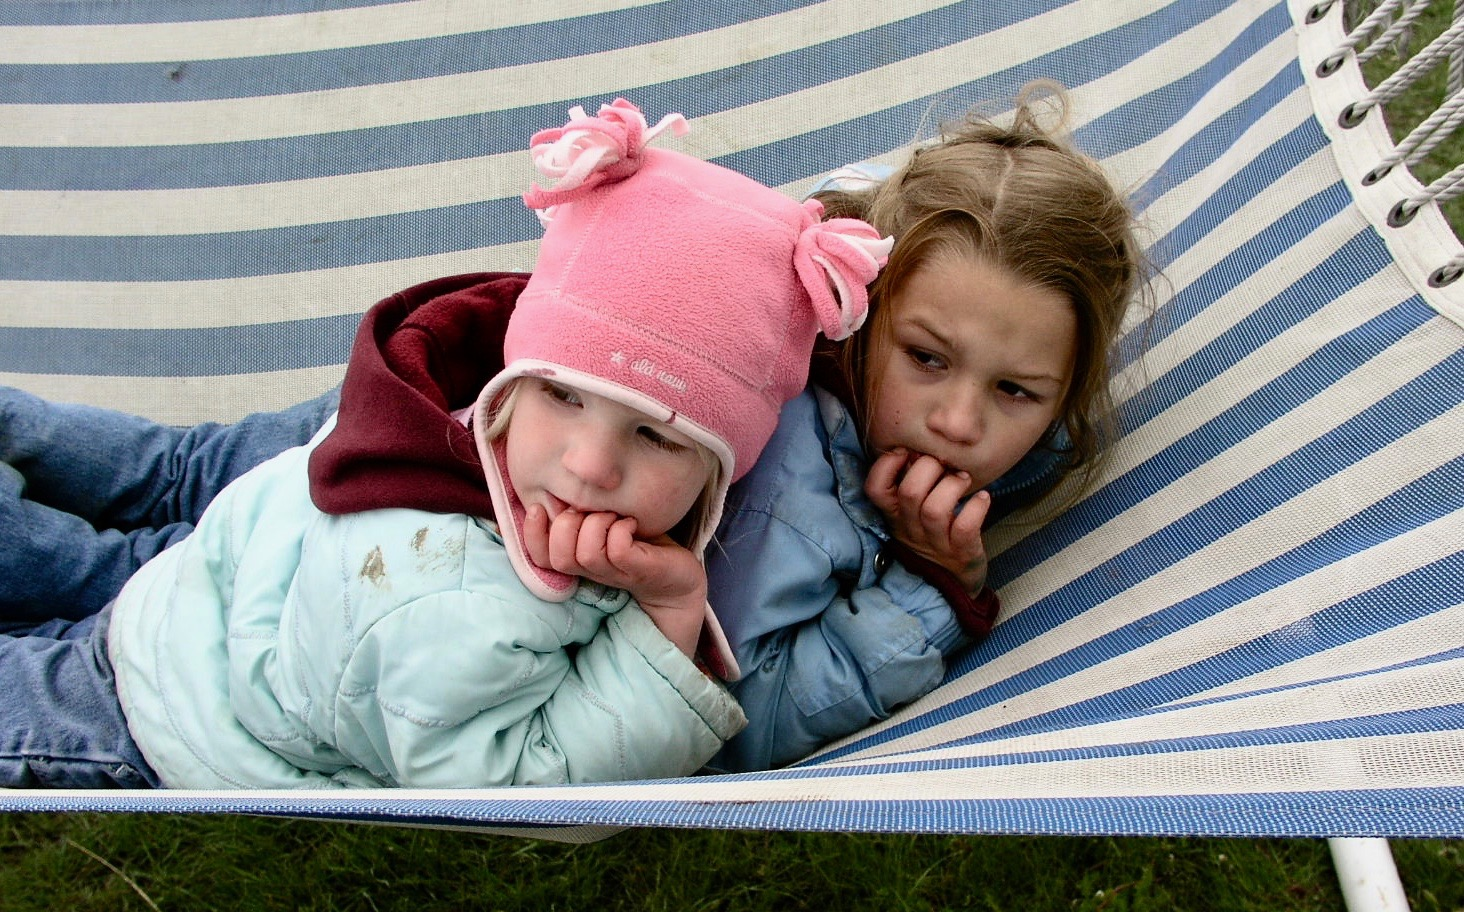 Kids on the Hammock